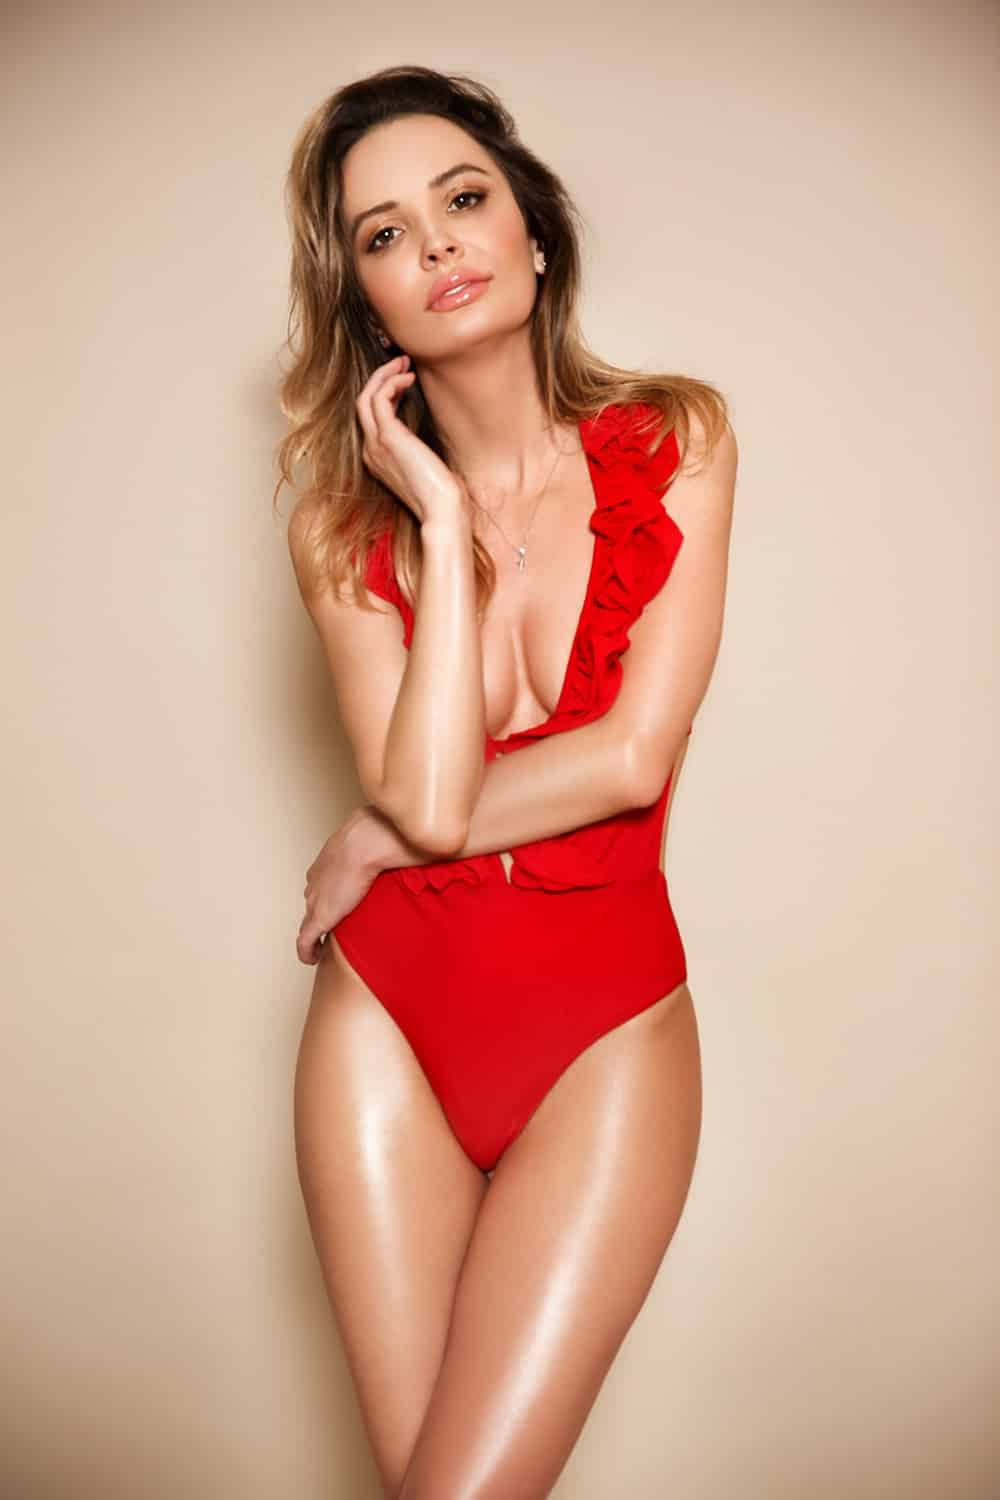 Lucy Earls Court Escort